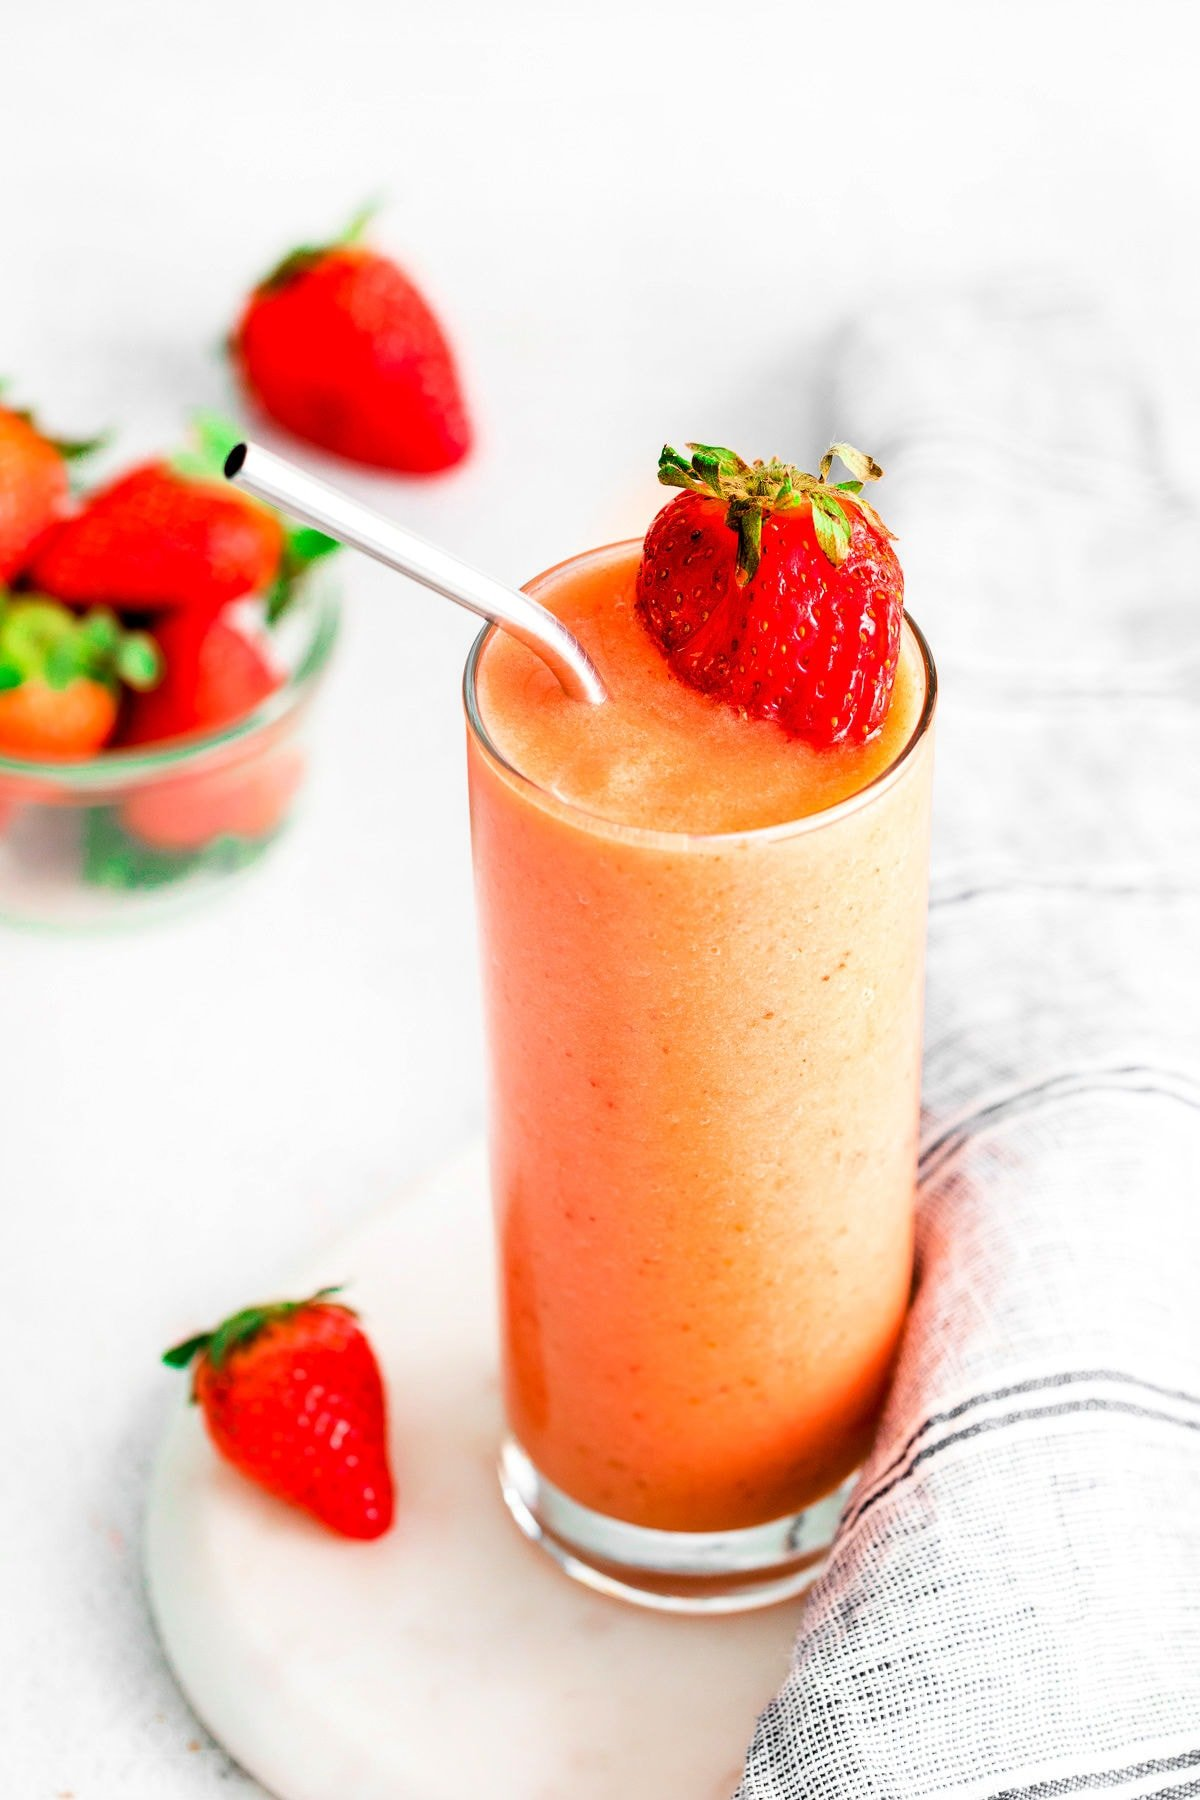 strawberry smoothie with mango in a tall glass on white surface.